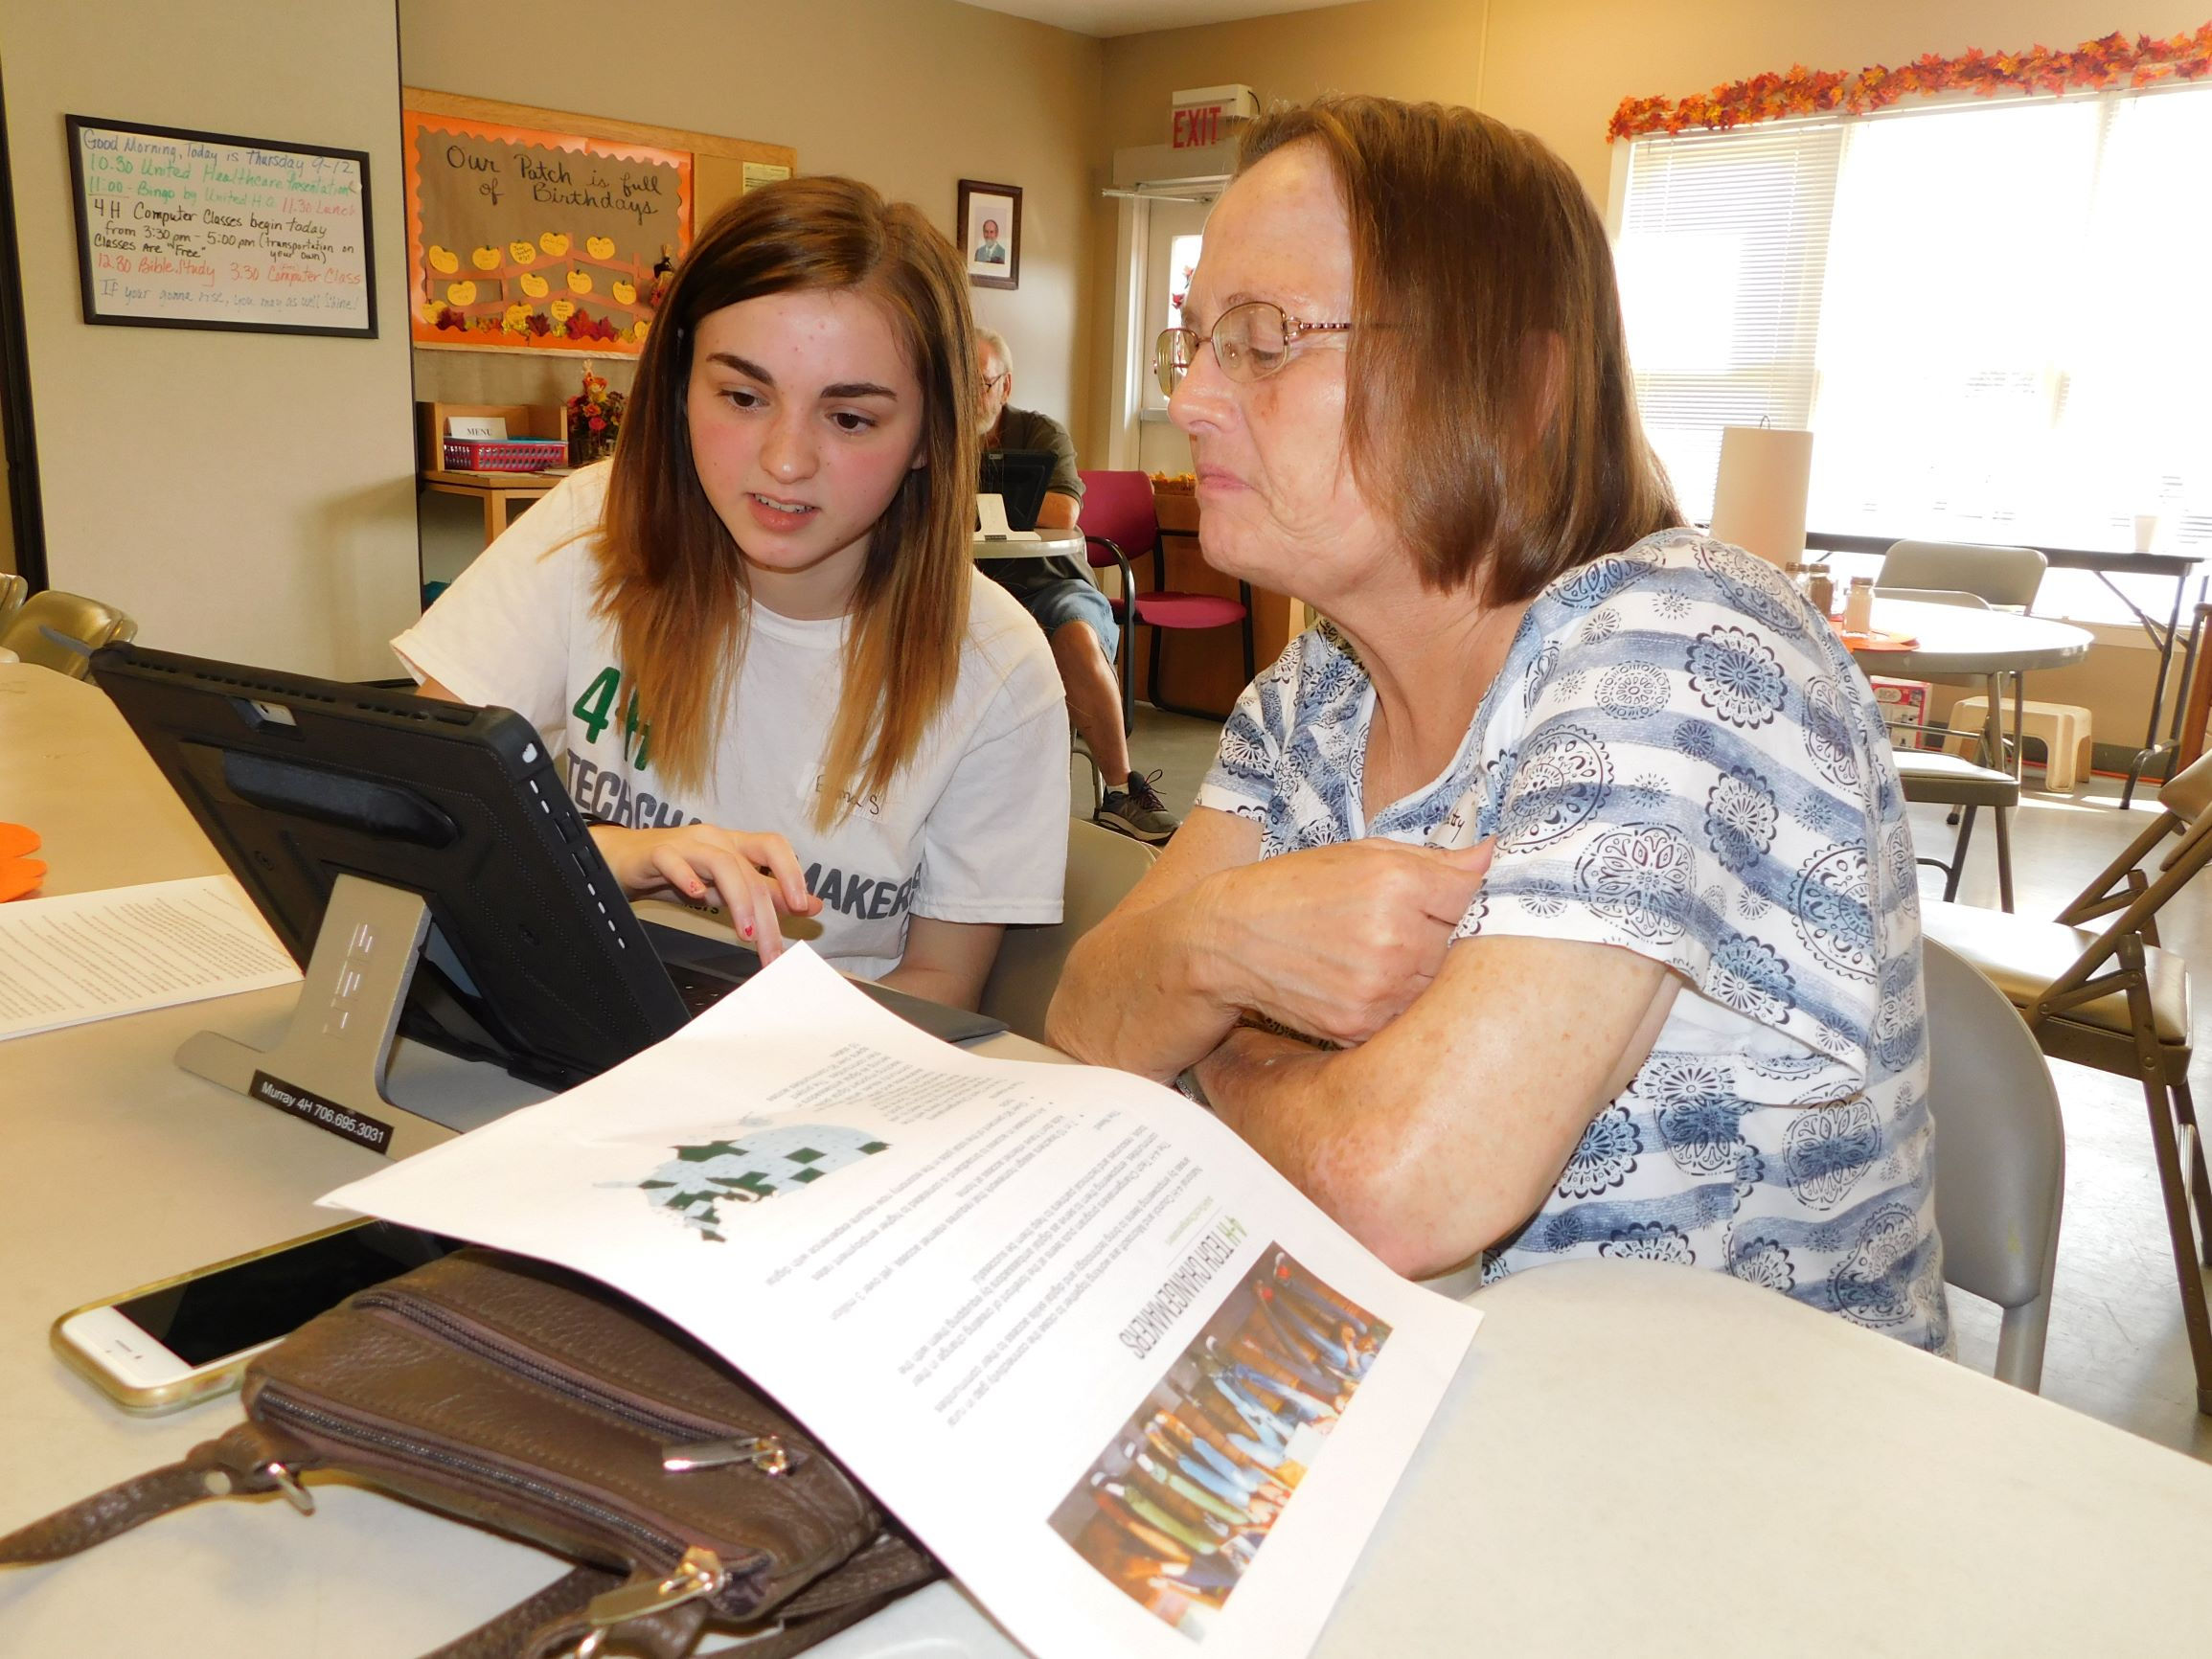 Tech Changemaker youth leader Emma works with her partner on a Microsoft Surface Pro during the monthly technology help session at the Murray County Senior Center.